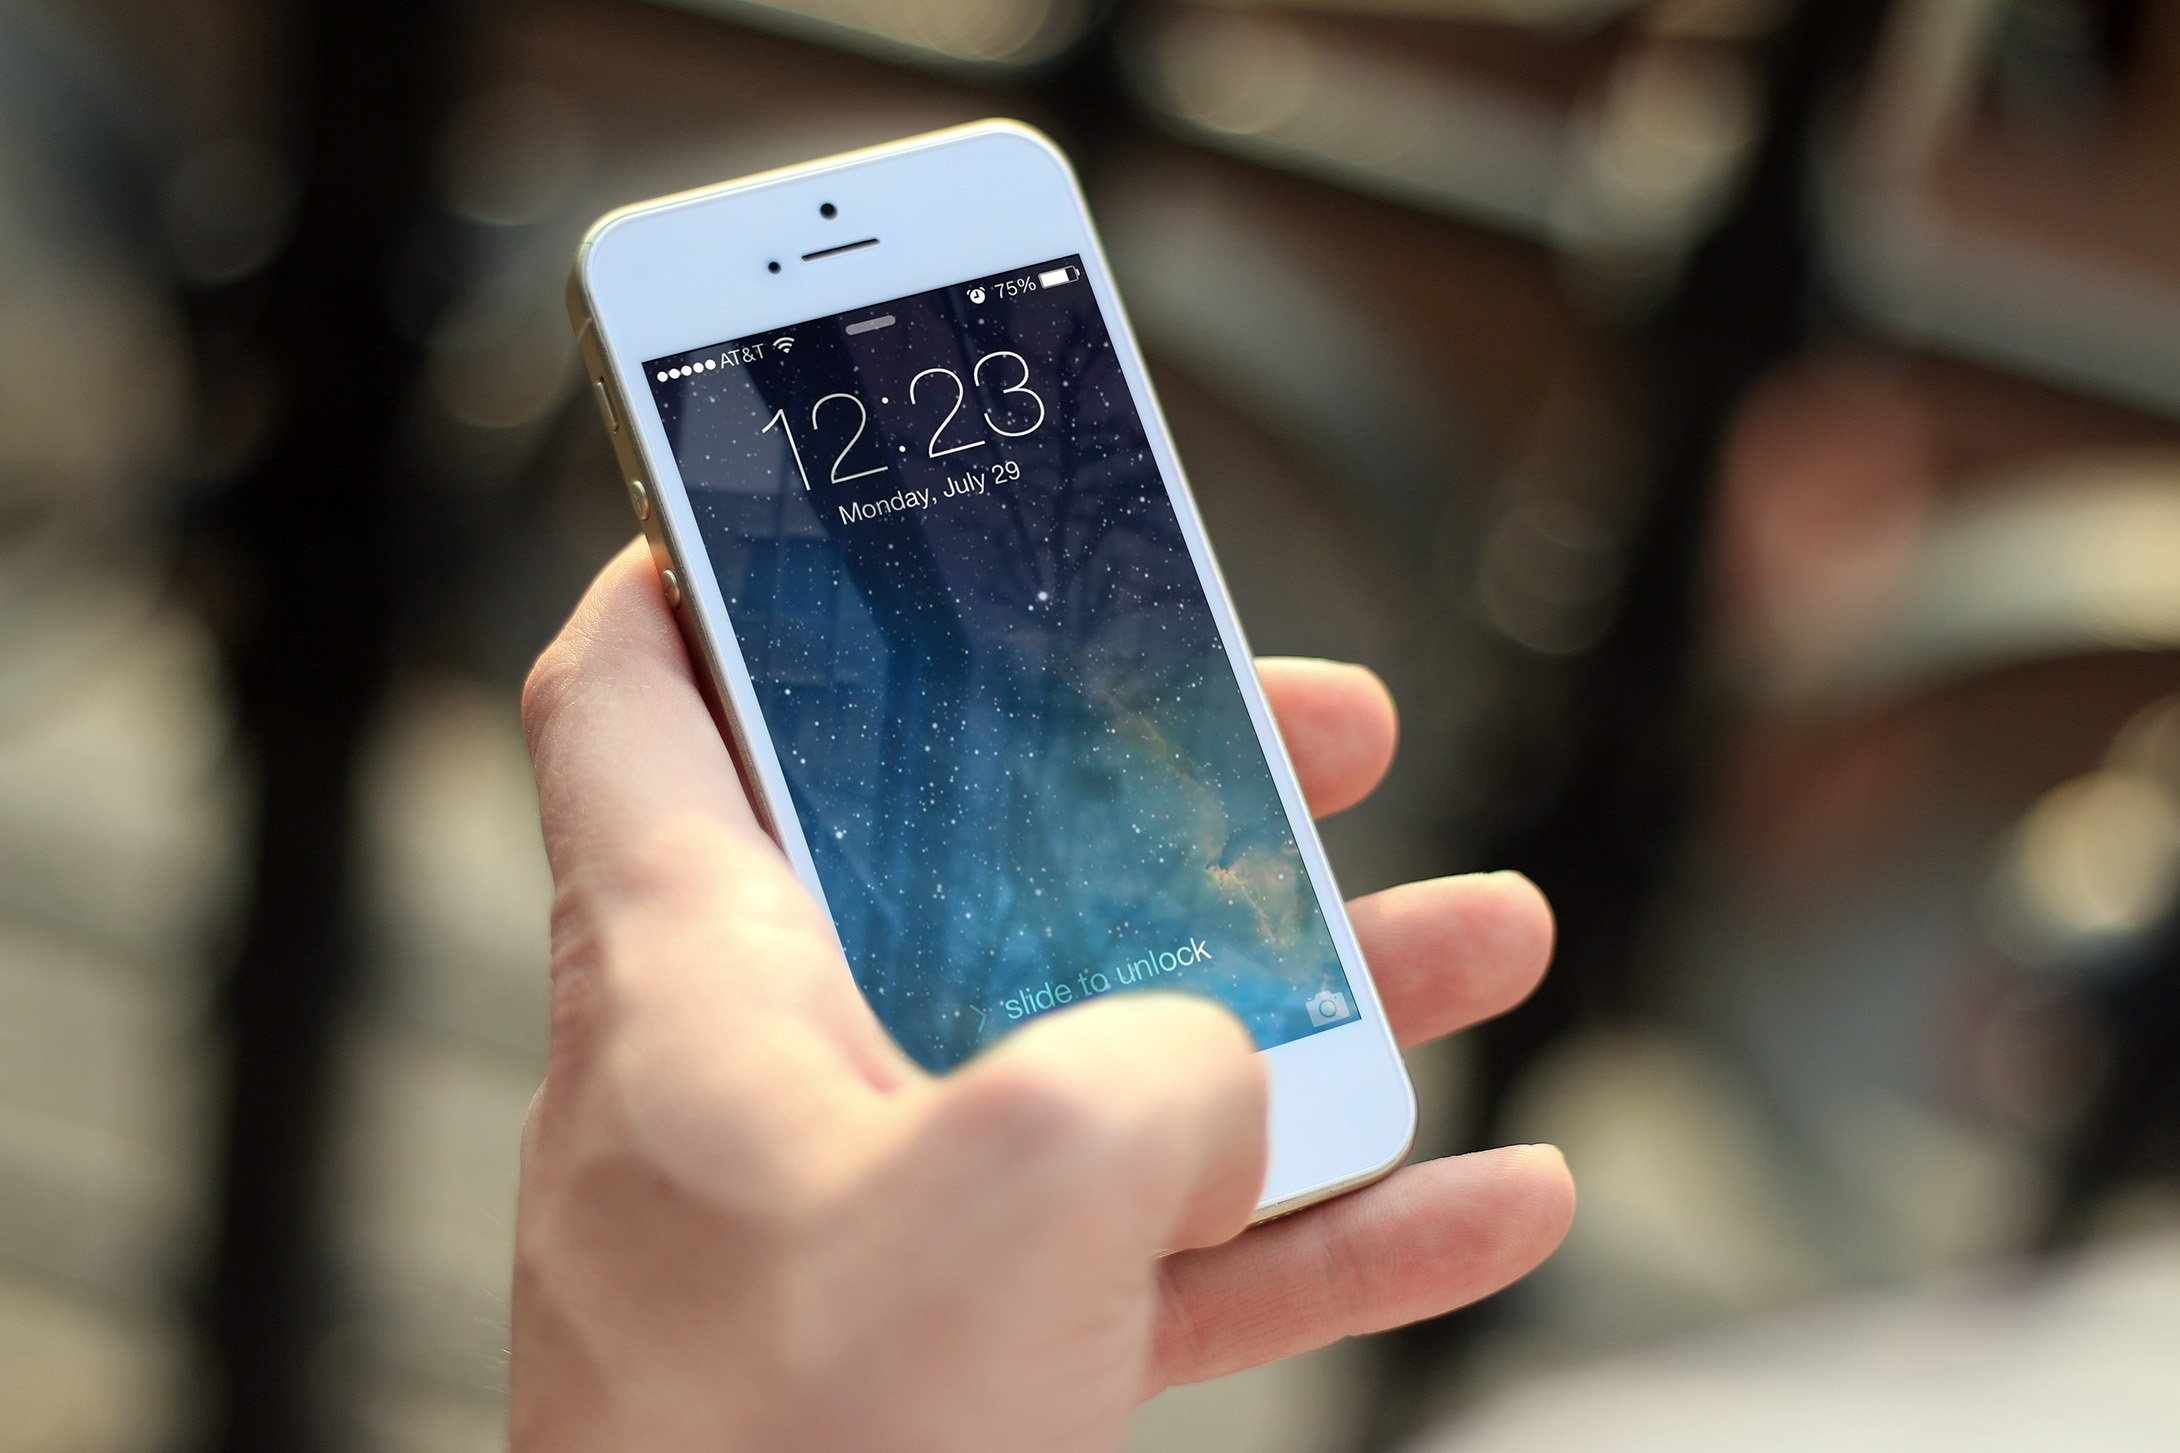 image of hand holding phone